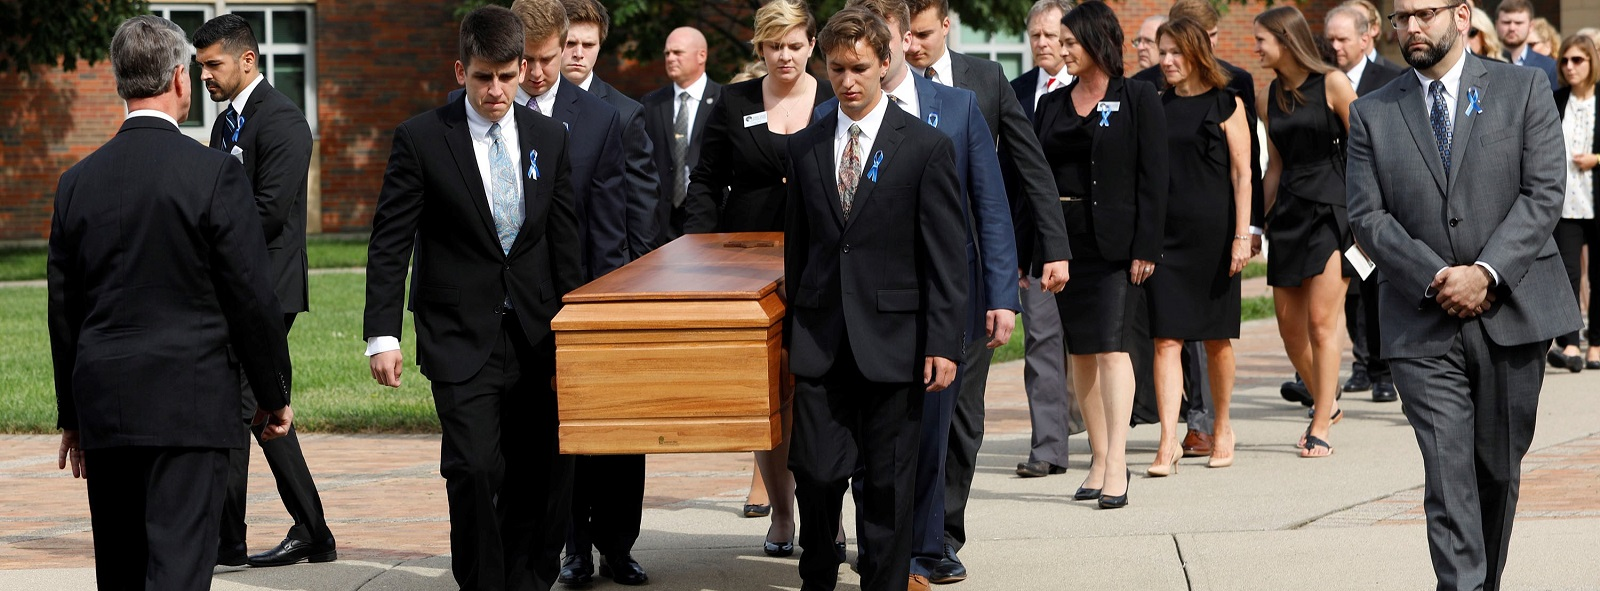 The casket of Otto Warmbier is carried out from his funeral on 22 June in Wyoming, Ohio. (Photo:Bill Pugliano/Getty Images)